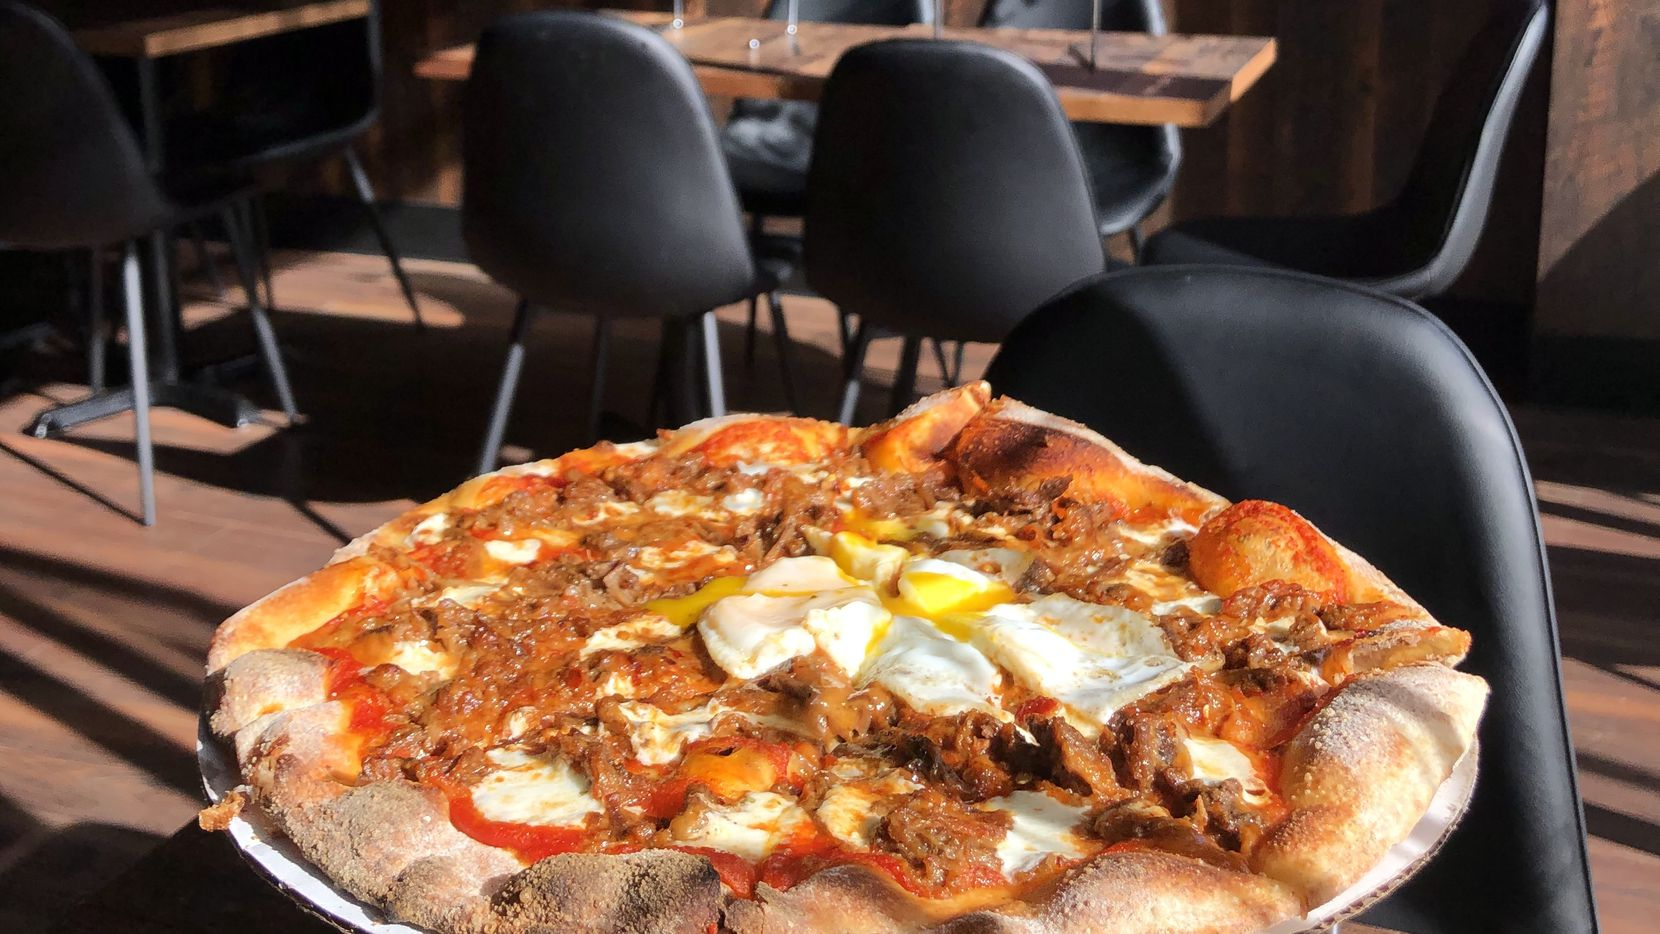 Flattery is a pizza joint in Dallas that opened in December 2019. Here's the Texan pizza topped with beef, mozzarella and a fried egg.